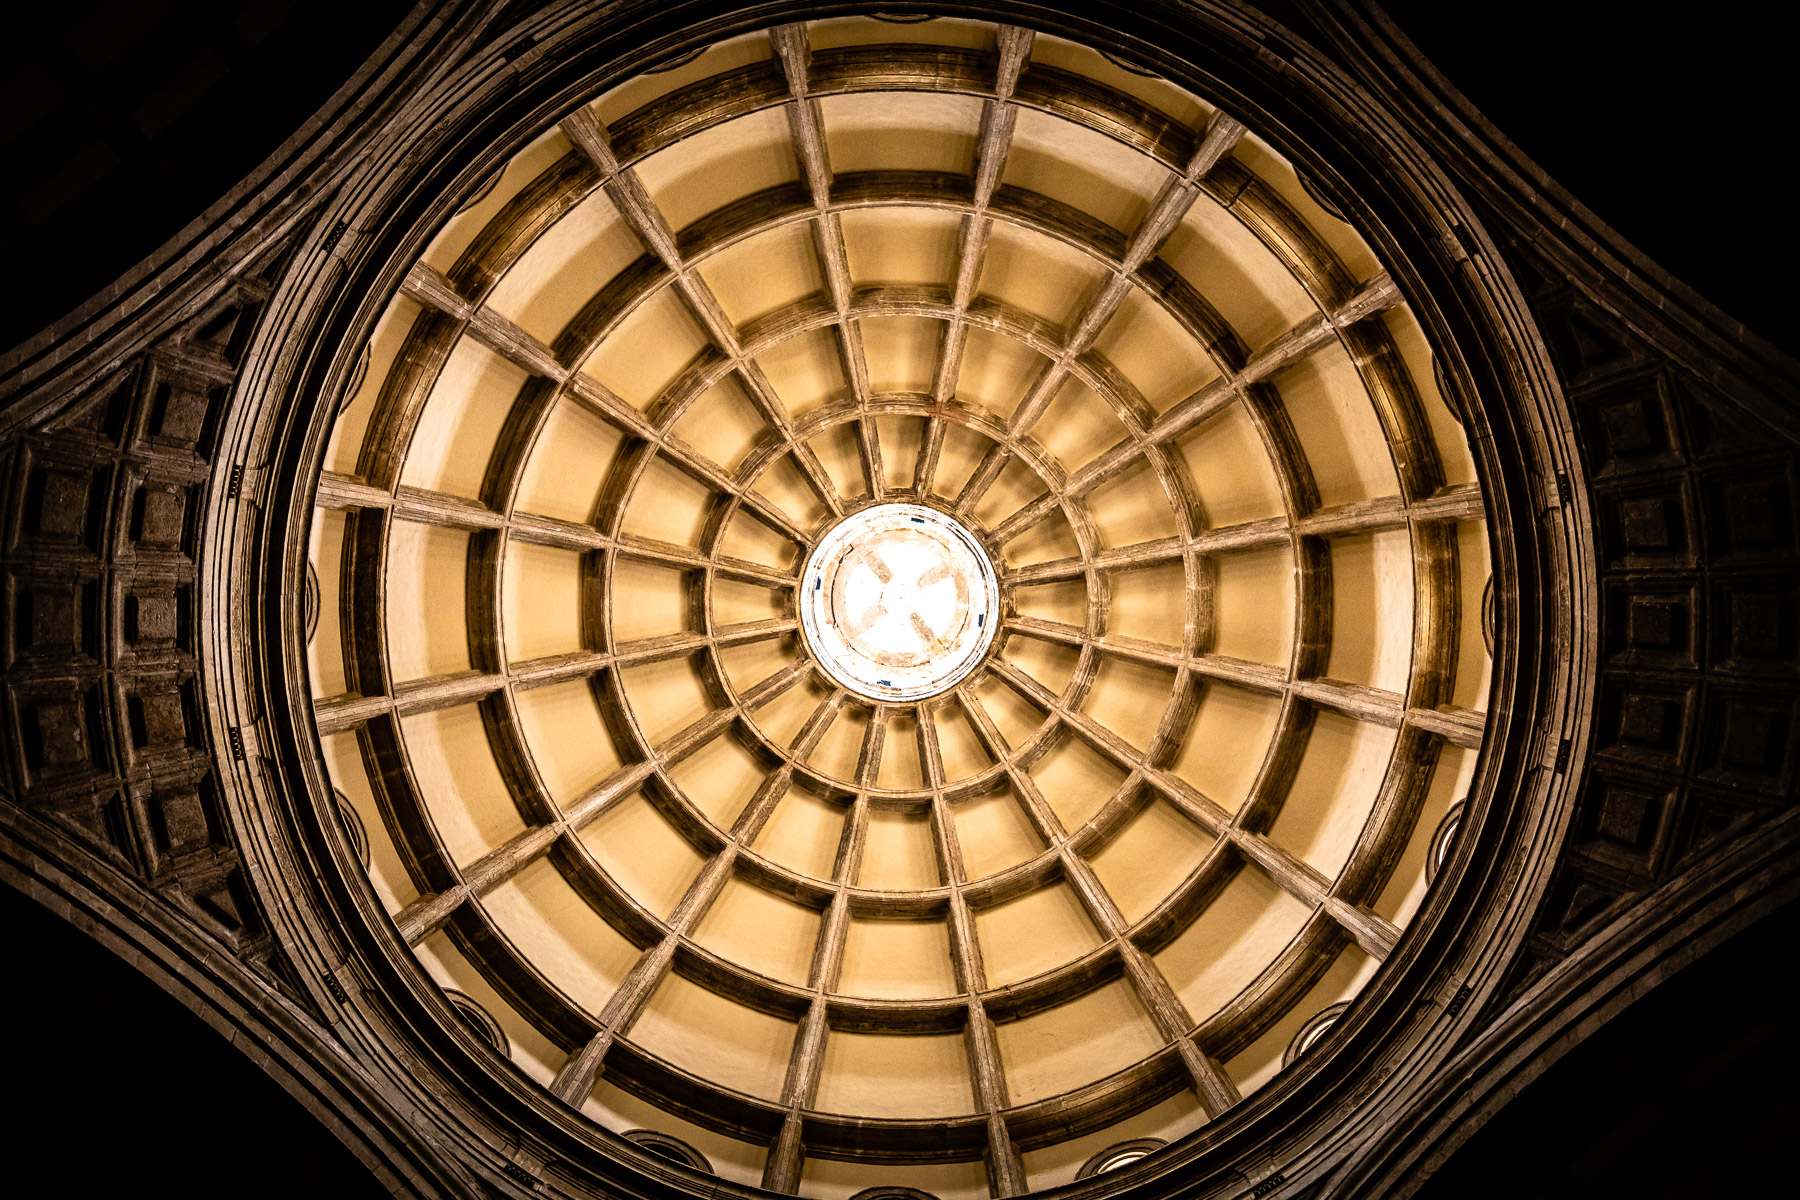 The central oculus of the vaulted ceiling of Catedral de San Ildefonso in Mérida, Mexico